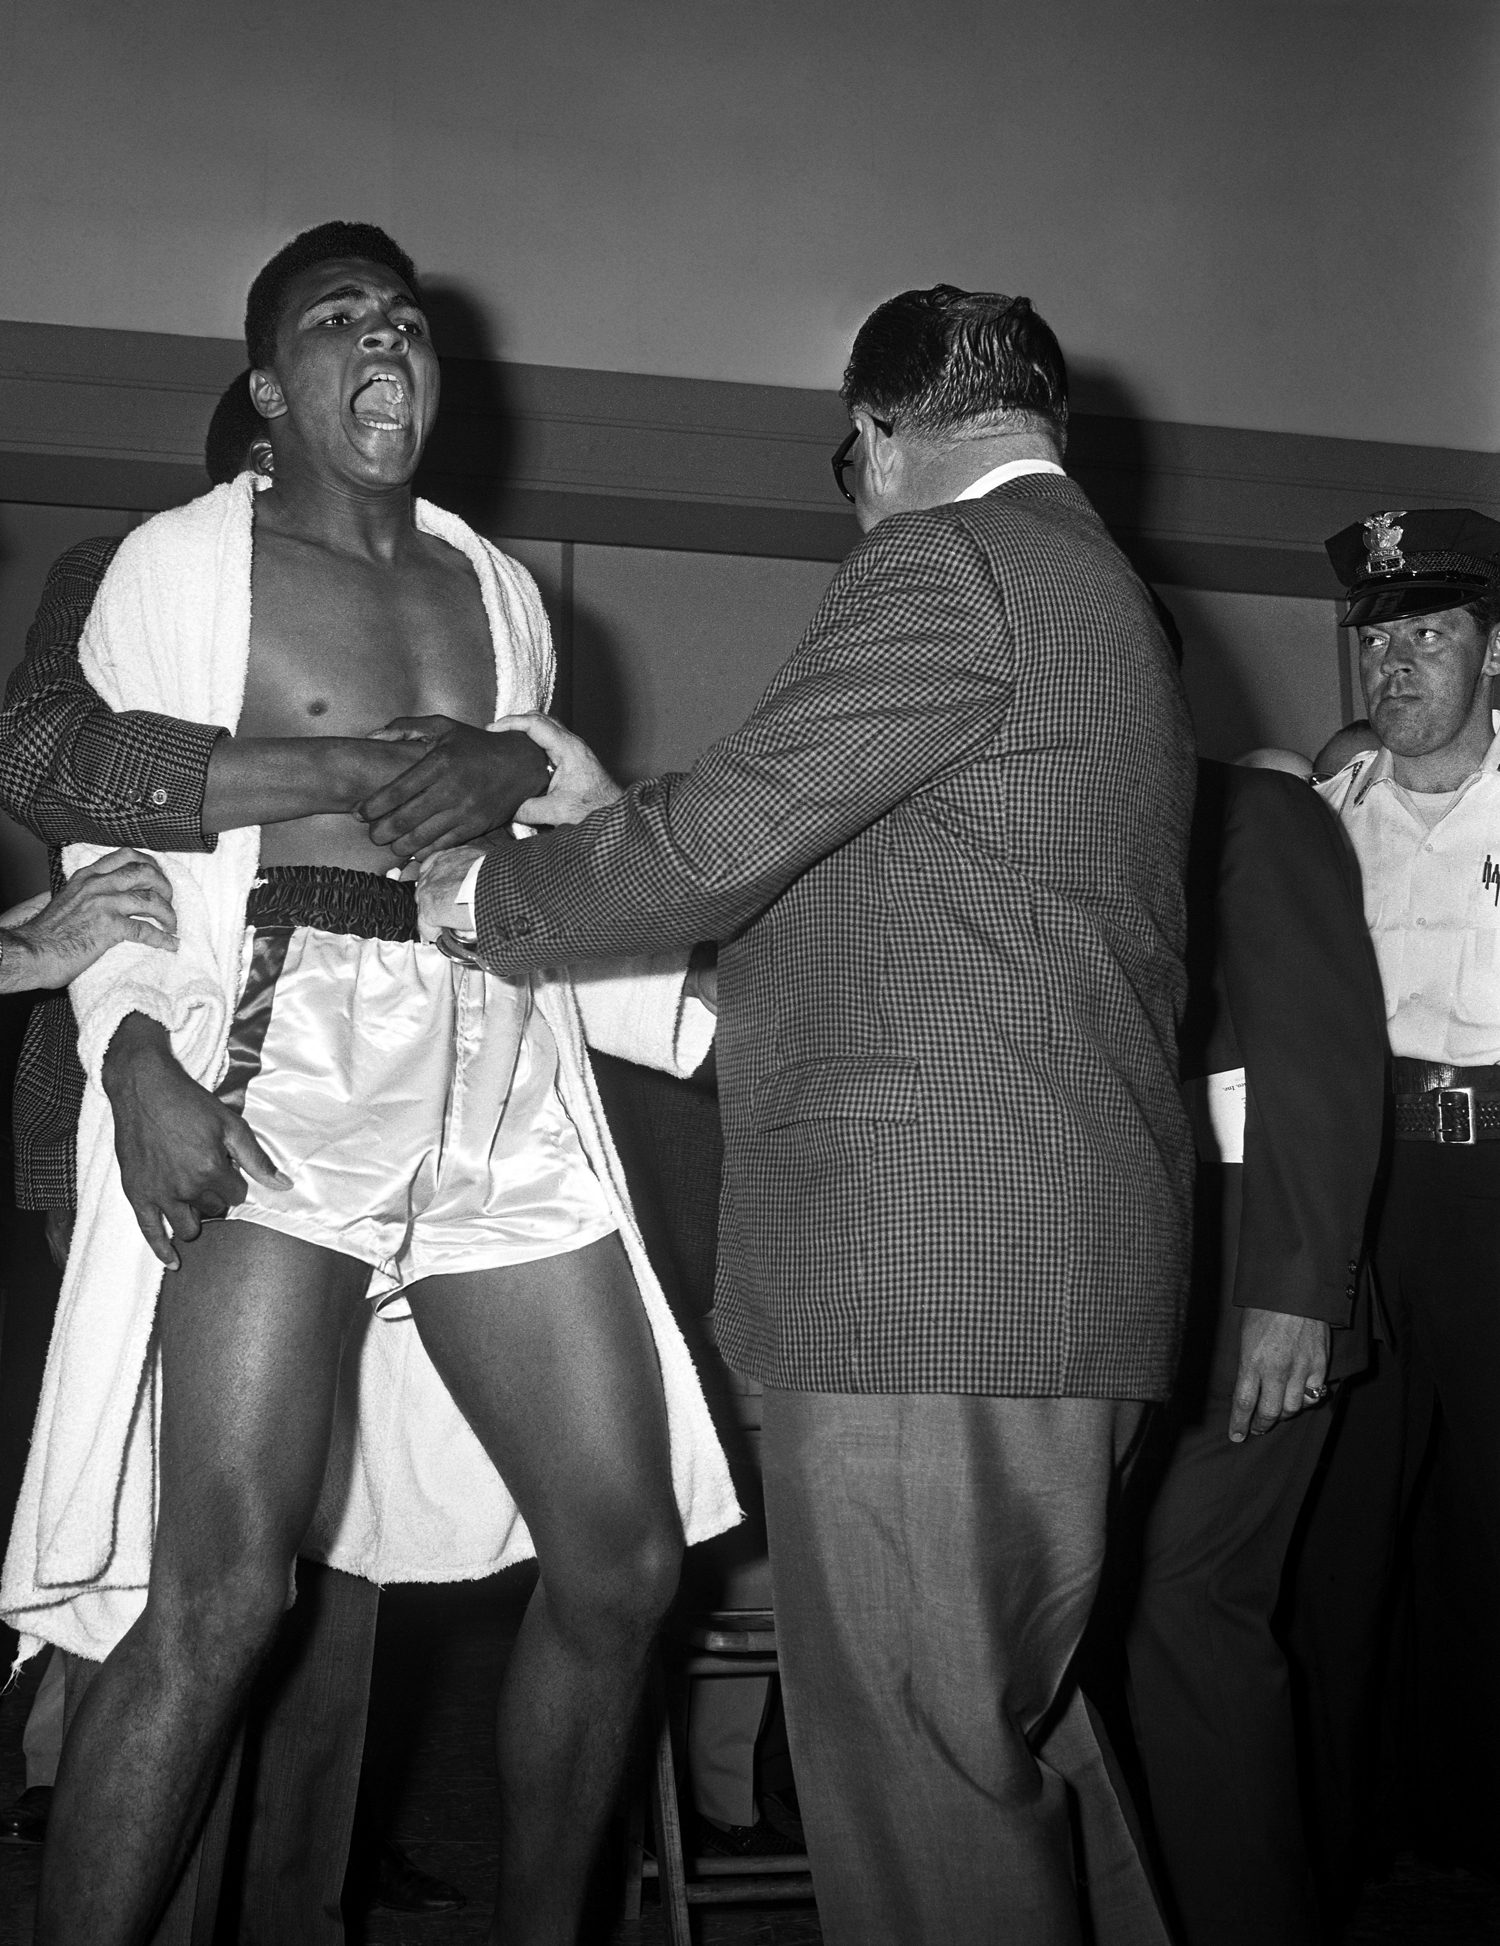 Cassius Clay (Muhammad Ali) vs Sonny Liston weigh-in, Miami